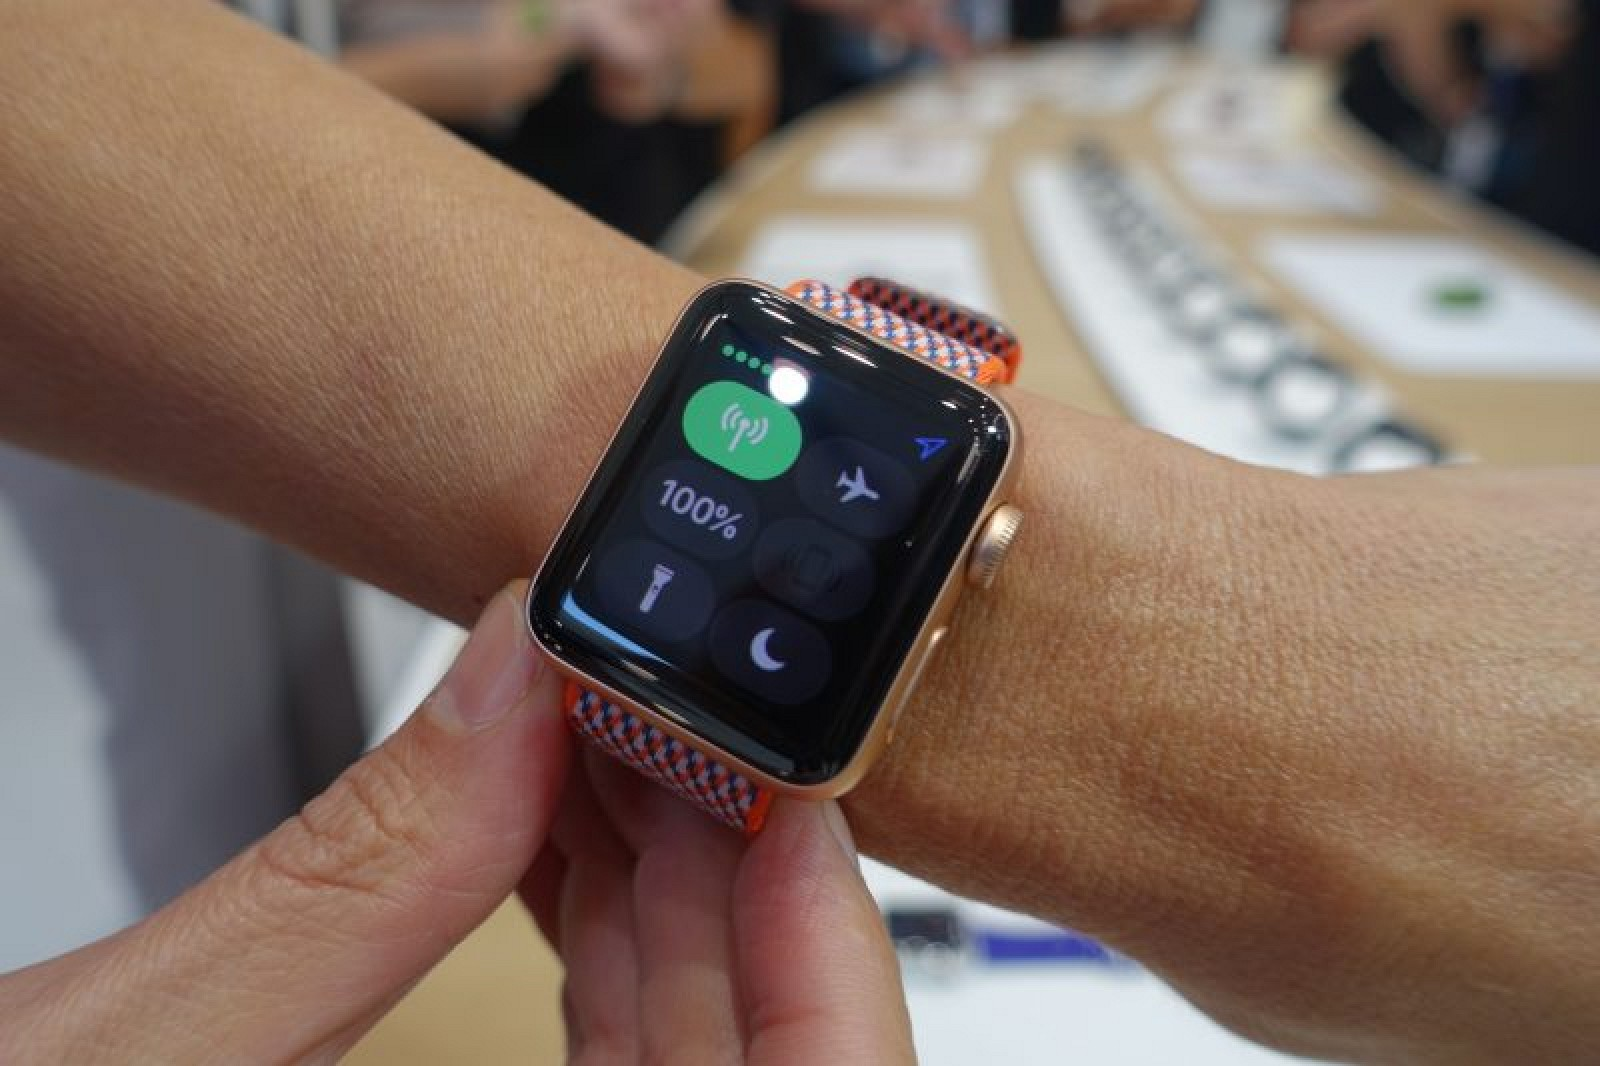 photo image Apple Watch Series 3: Skepticism Surrounds Usefulness of LTE, but Performance Improvements Welcome